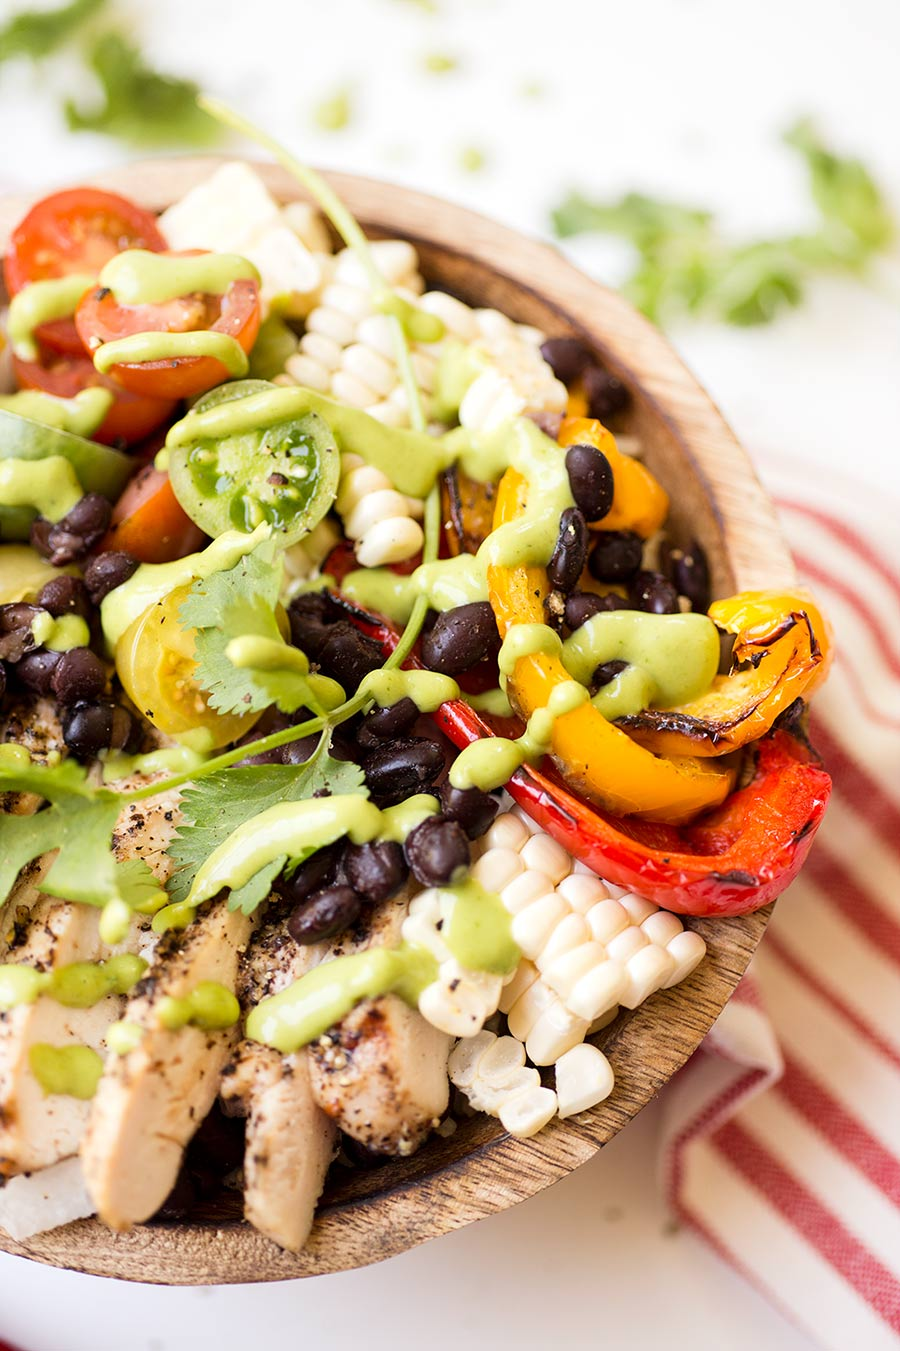 Southwestern Chicken Bowl - black beans, cherry tomatoes, fresh corn, jicama...all generously doused in a creamy lime avocado sauce.